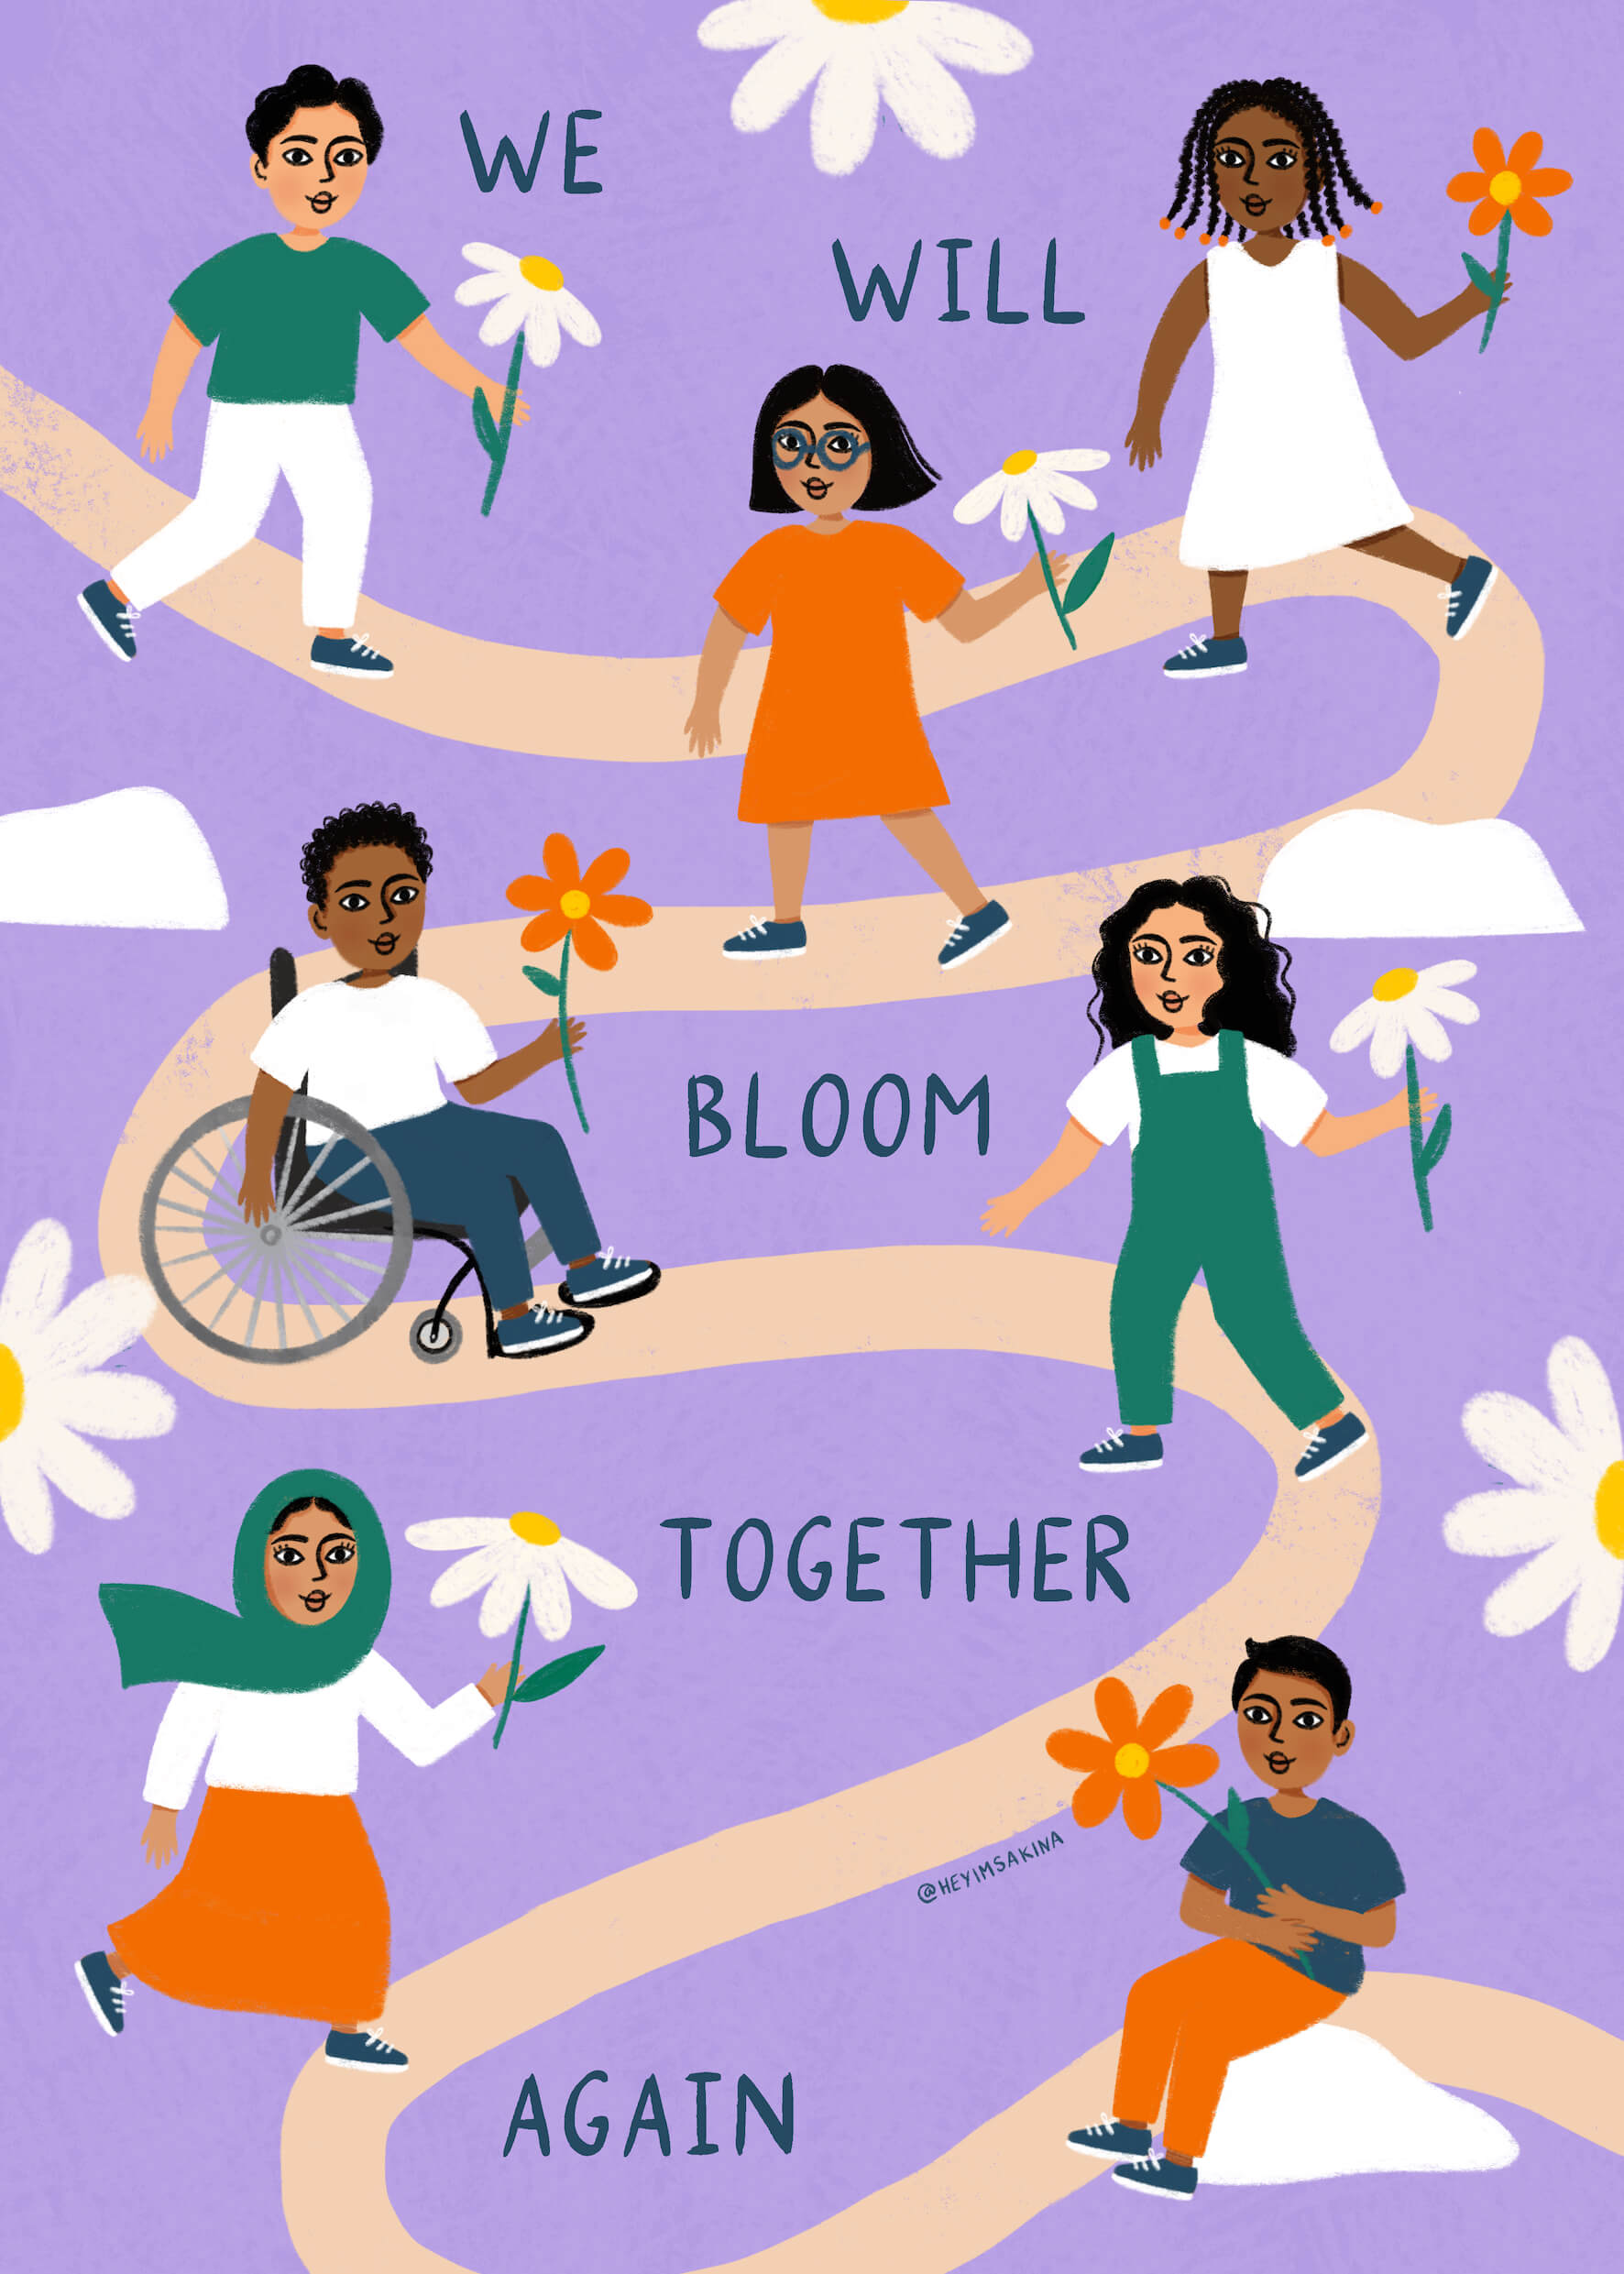 We Will Bloom Together Again main image